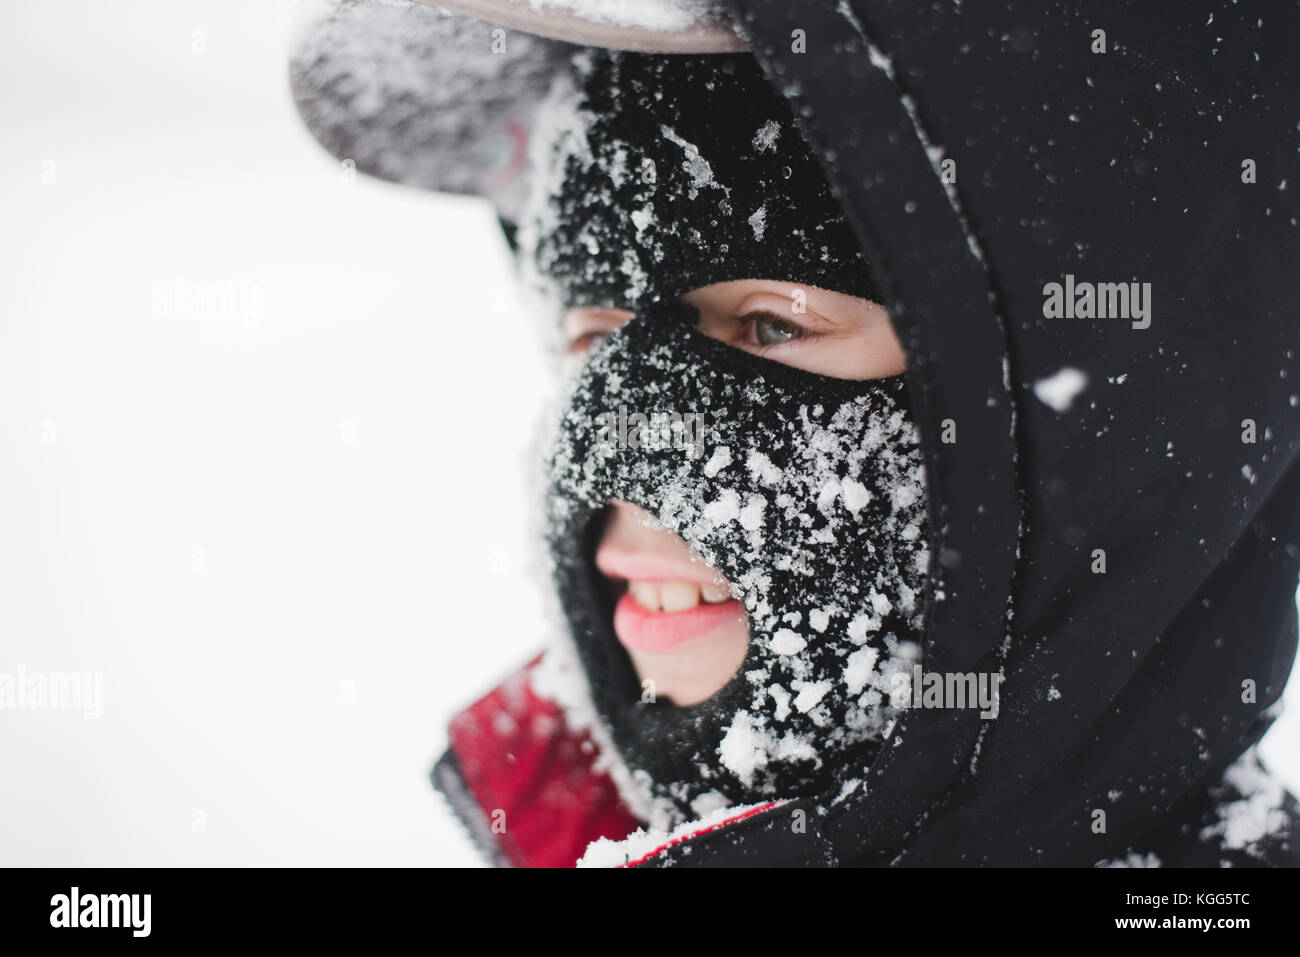 Enfant portant un masque de ski couverte de neige Photo Stock